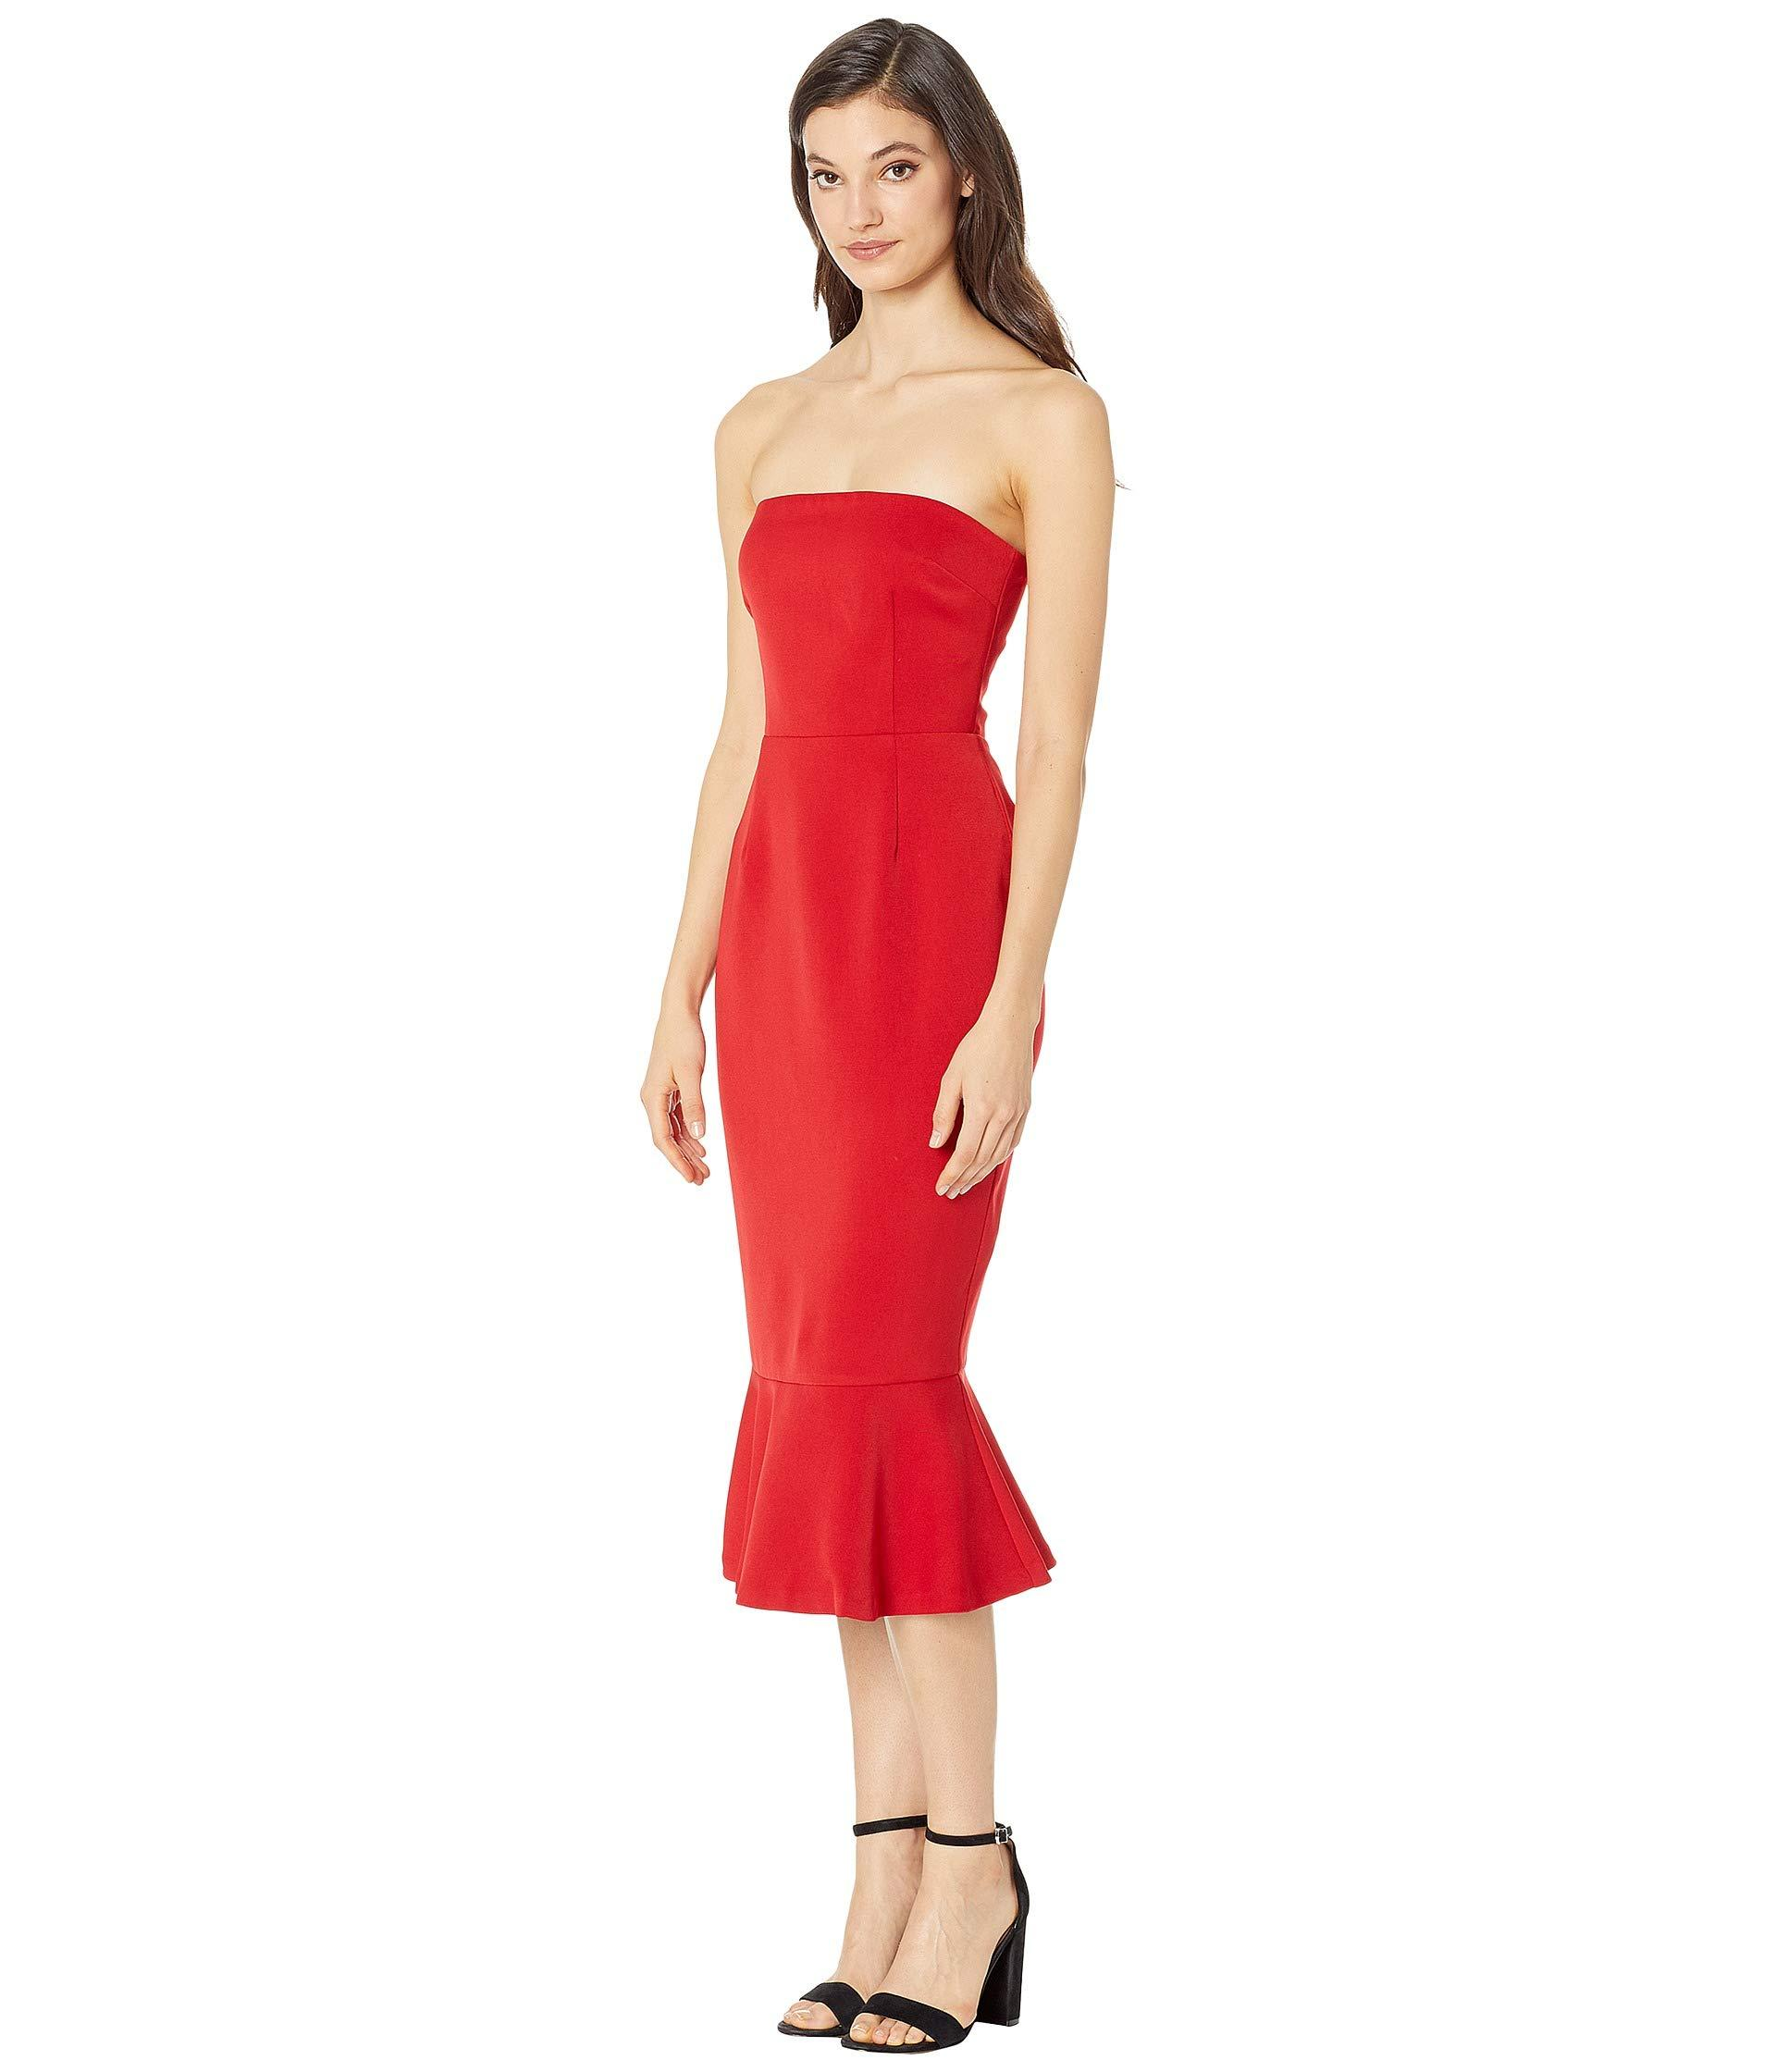 964d9e8780 Lyst - BB Dakota Light My Fire Strapless Dress in Red